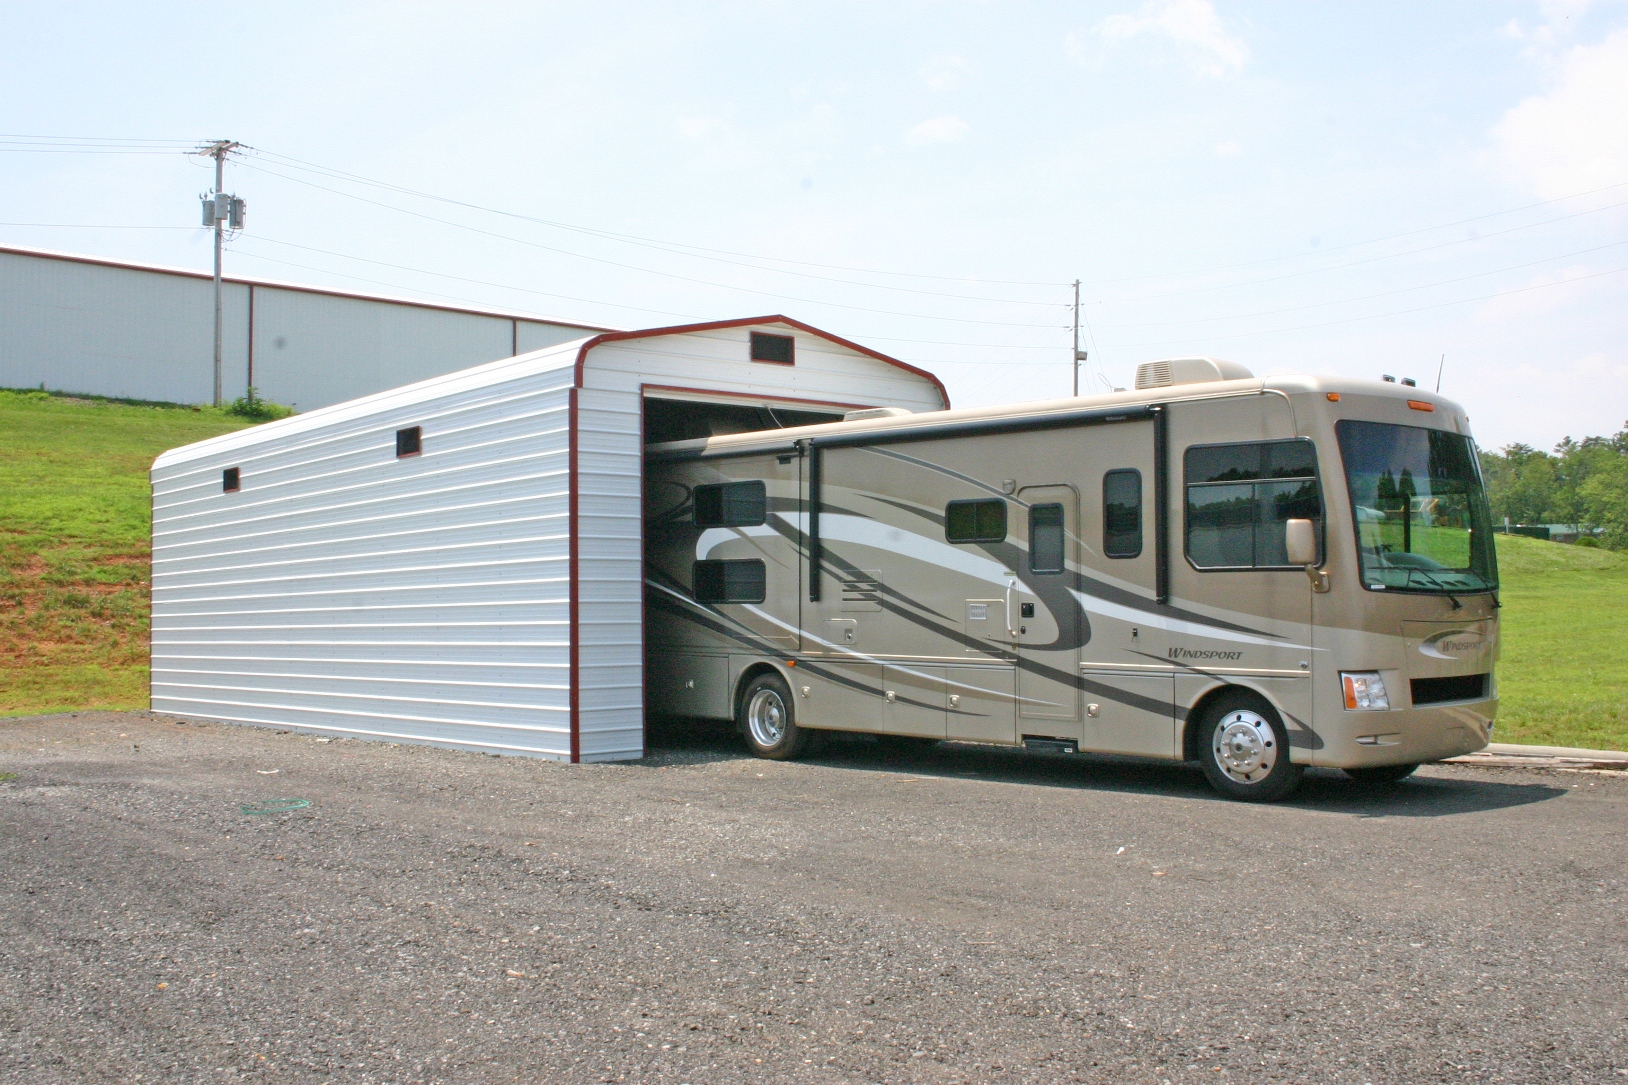 RV metal garage with white sides and ends, and red trim.